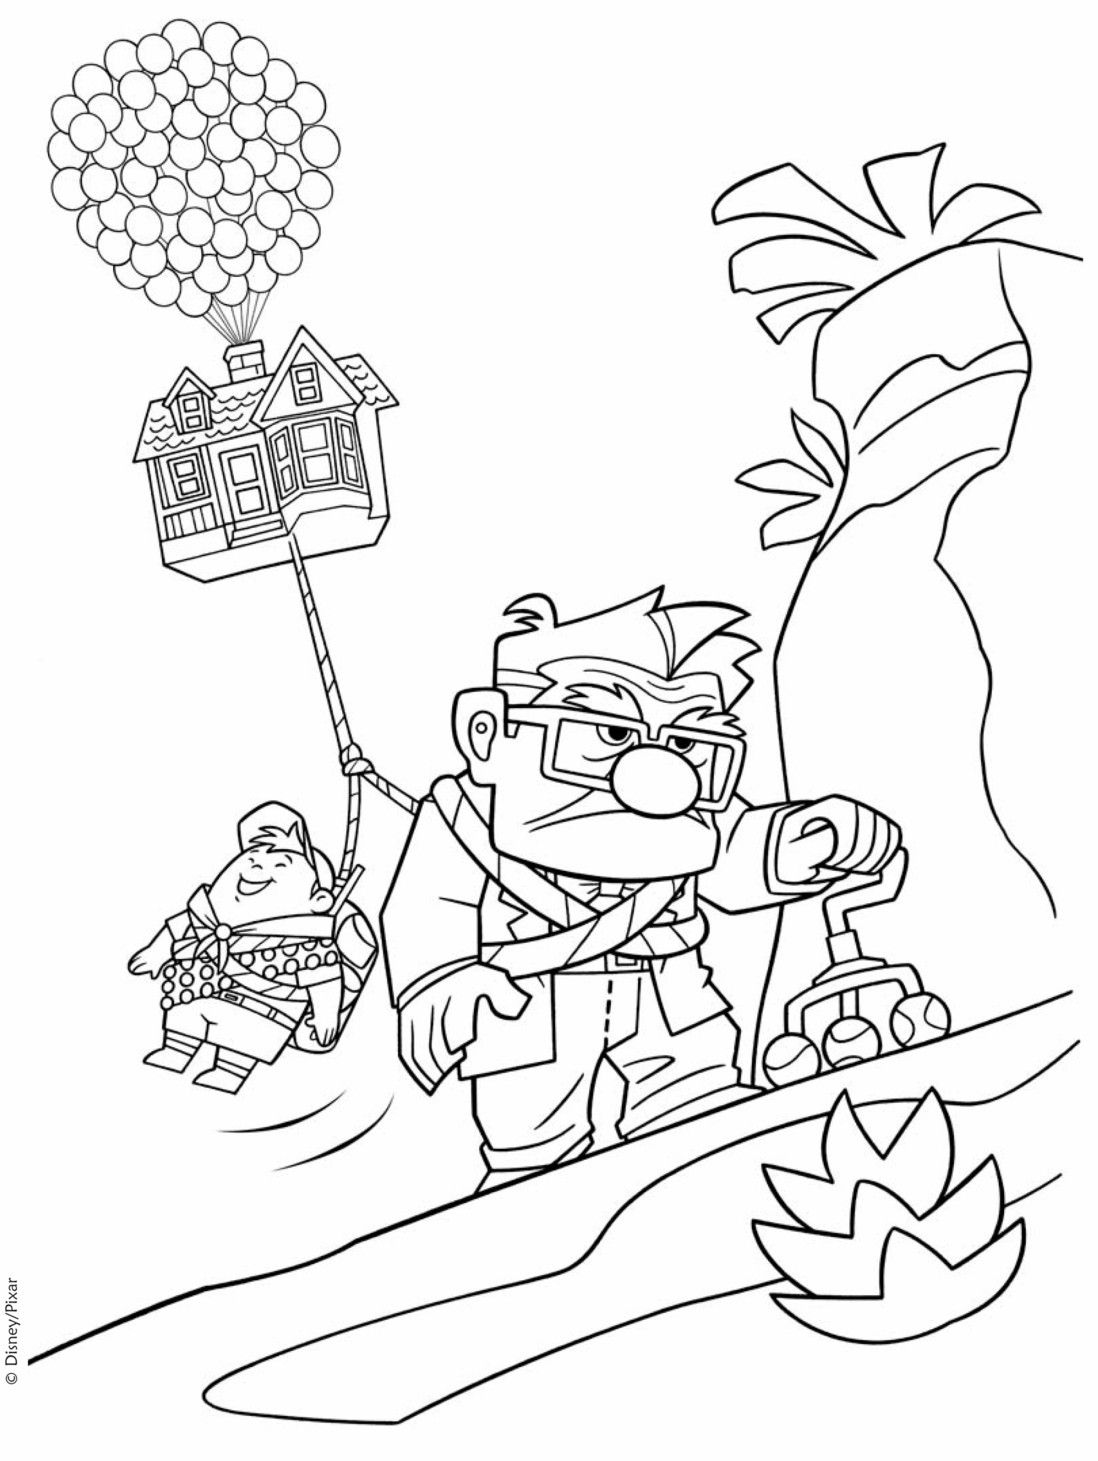 Disney up coloring sheets - Pixar Up Coloring Pages Printable Coloring Pages Sheets For Kids Get The Latest Free Pixar Up Coloring Pages Images Favorite Coloring Pages To Print